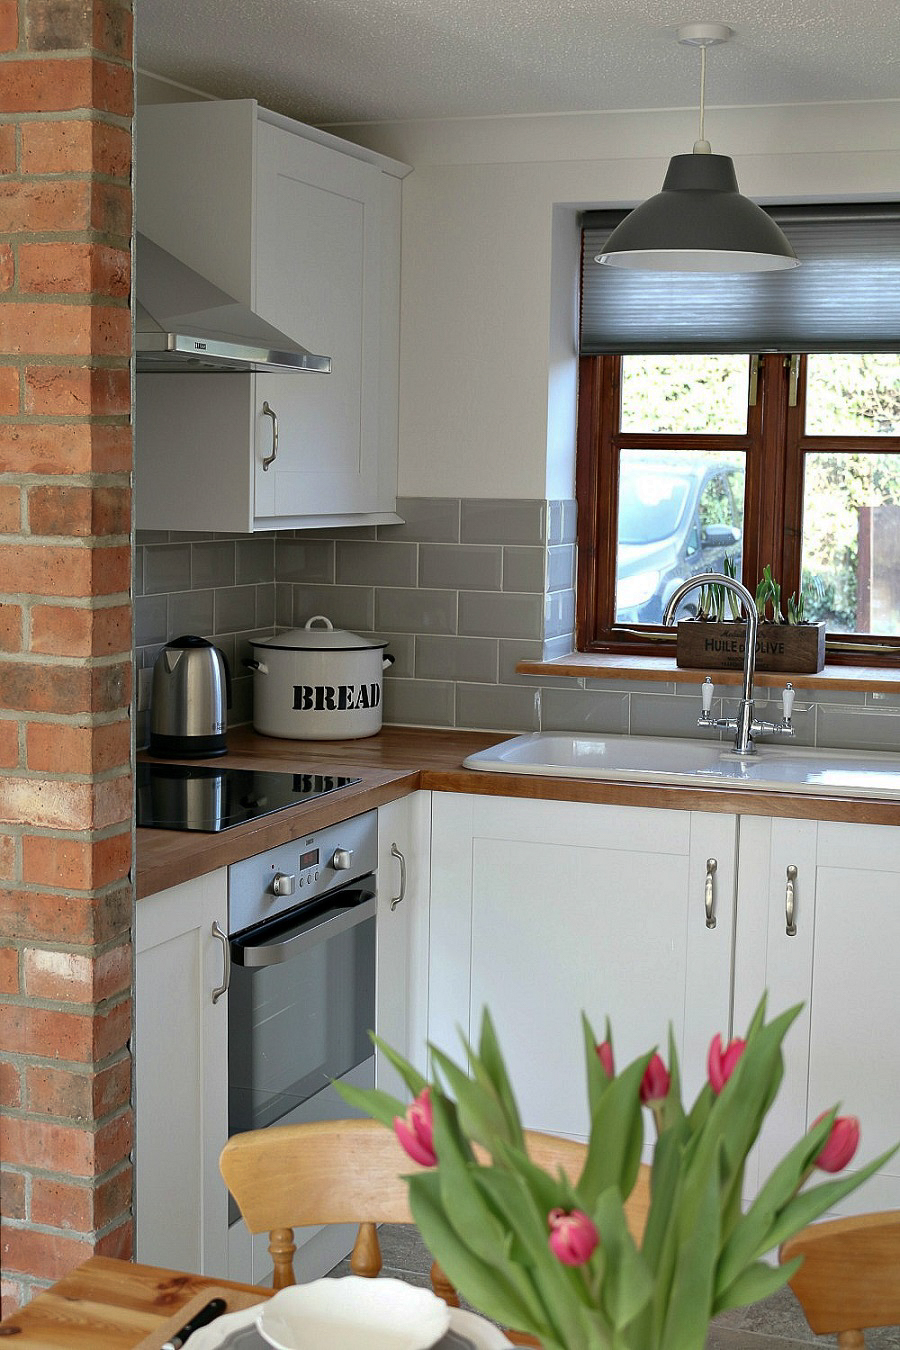 Lakeside Holiday Cottage To Let in Norfolk